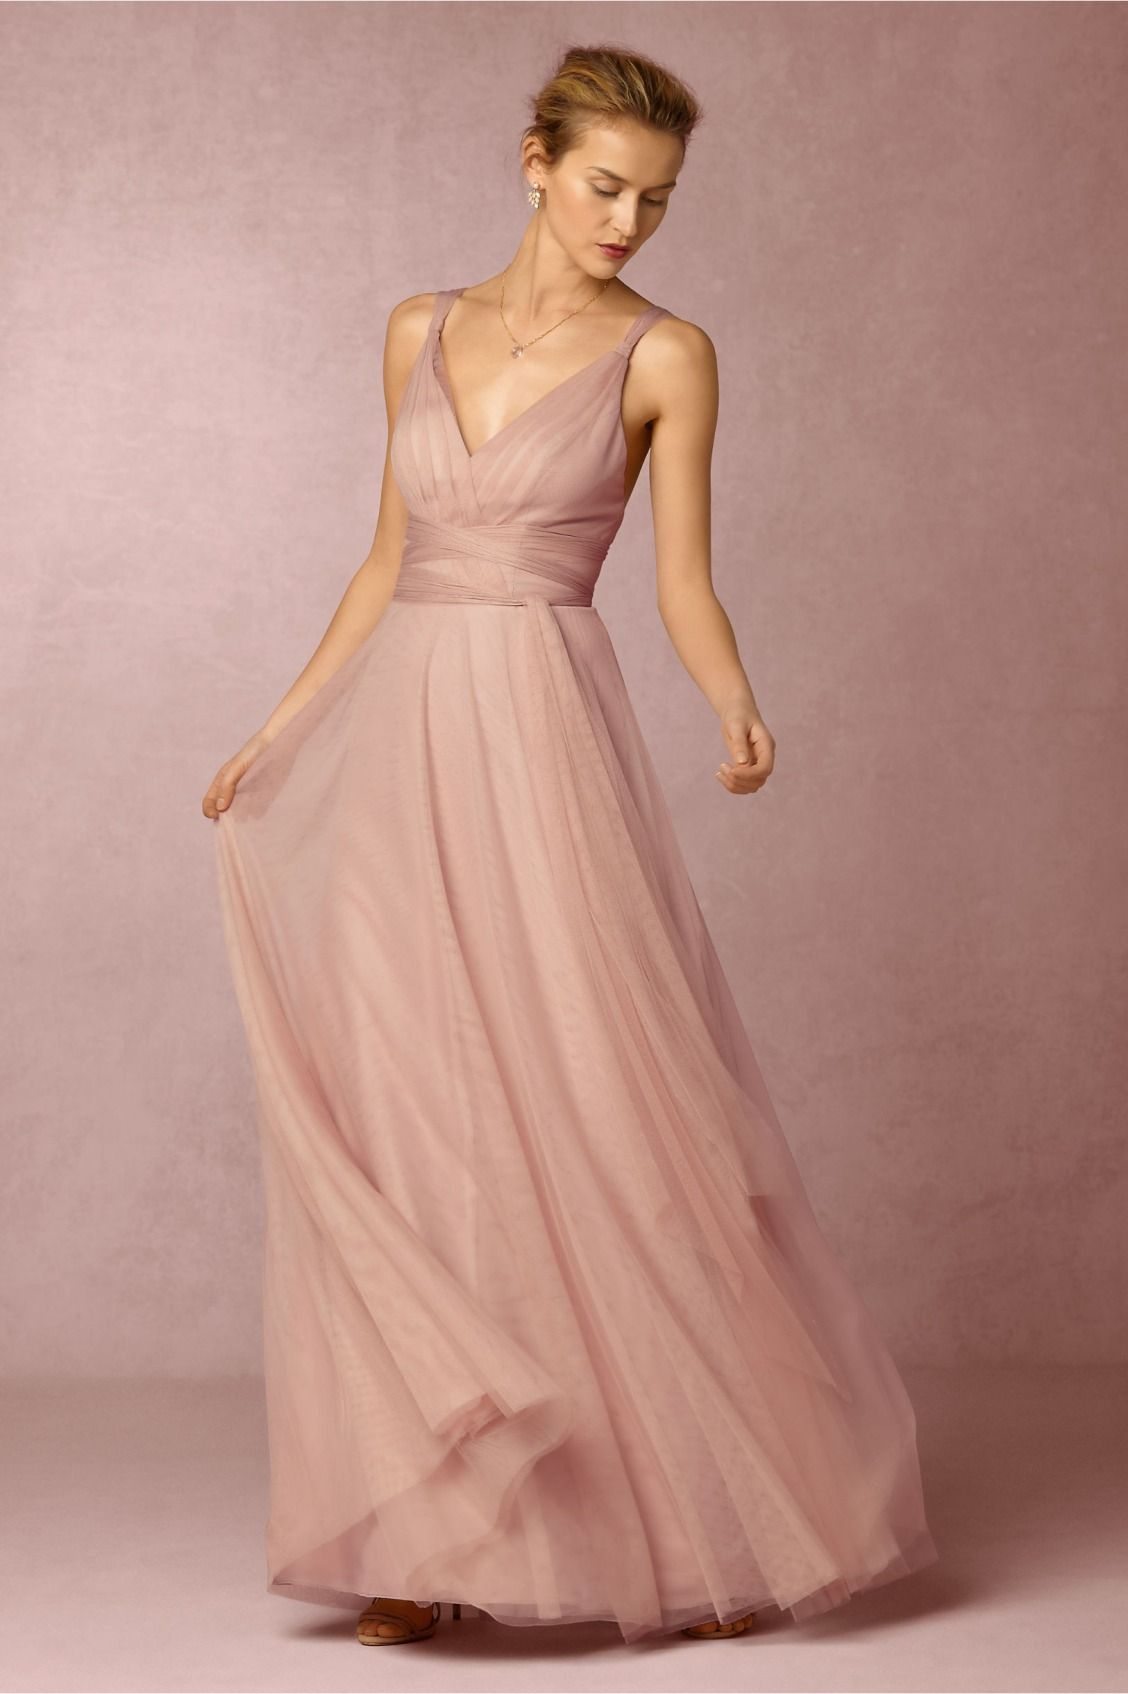 38b51e192a3 convertible dream dress